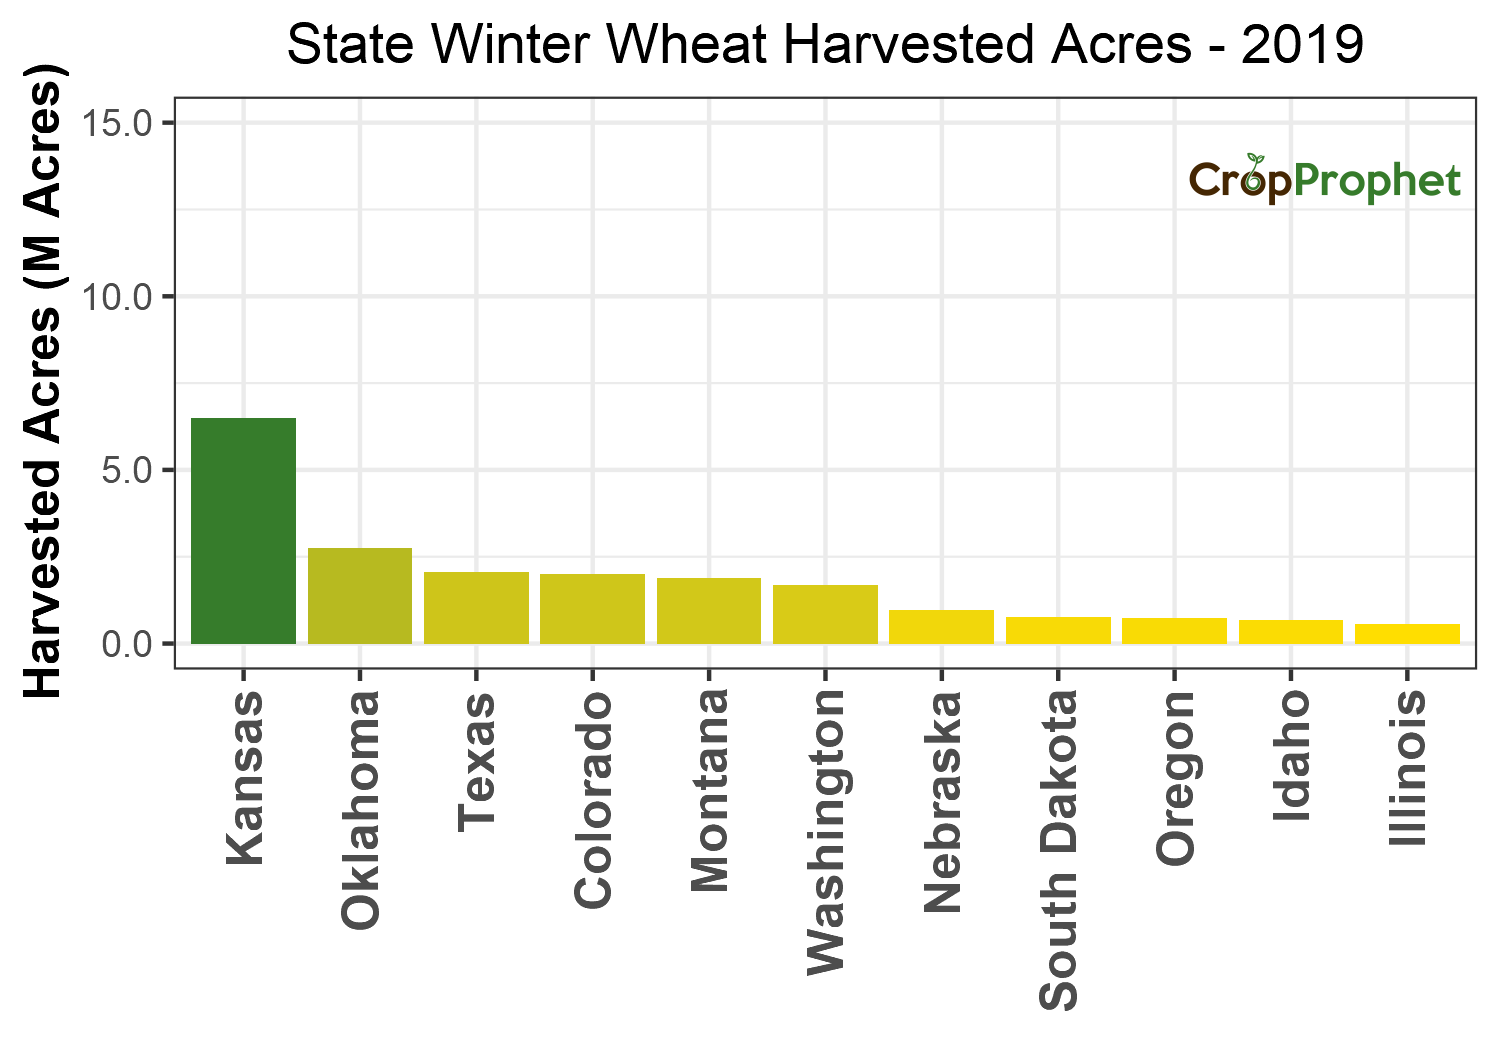 Winter wheat Harvested Acres by State - 2019 Rankings